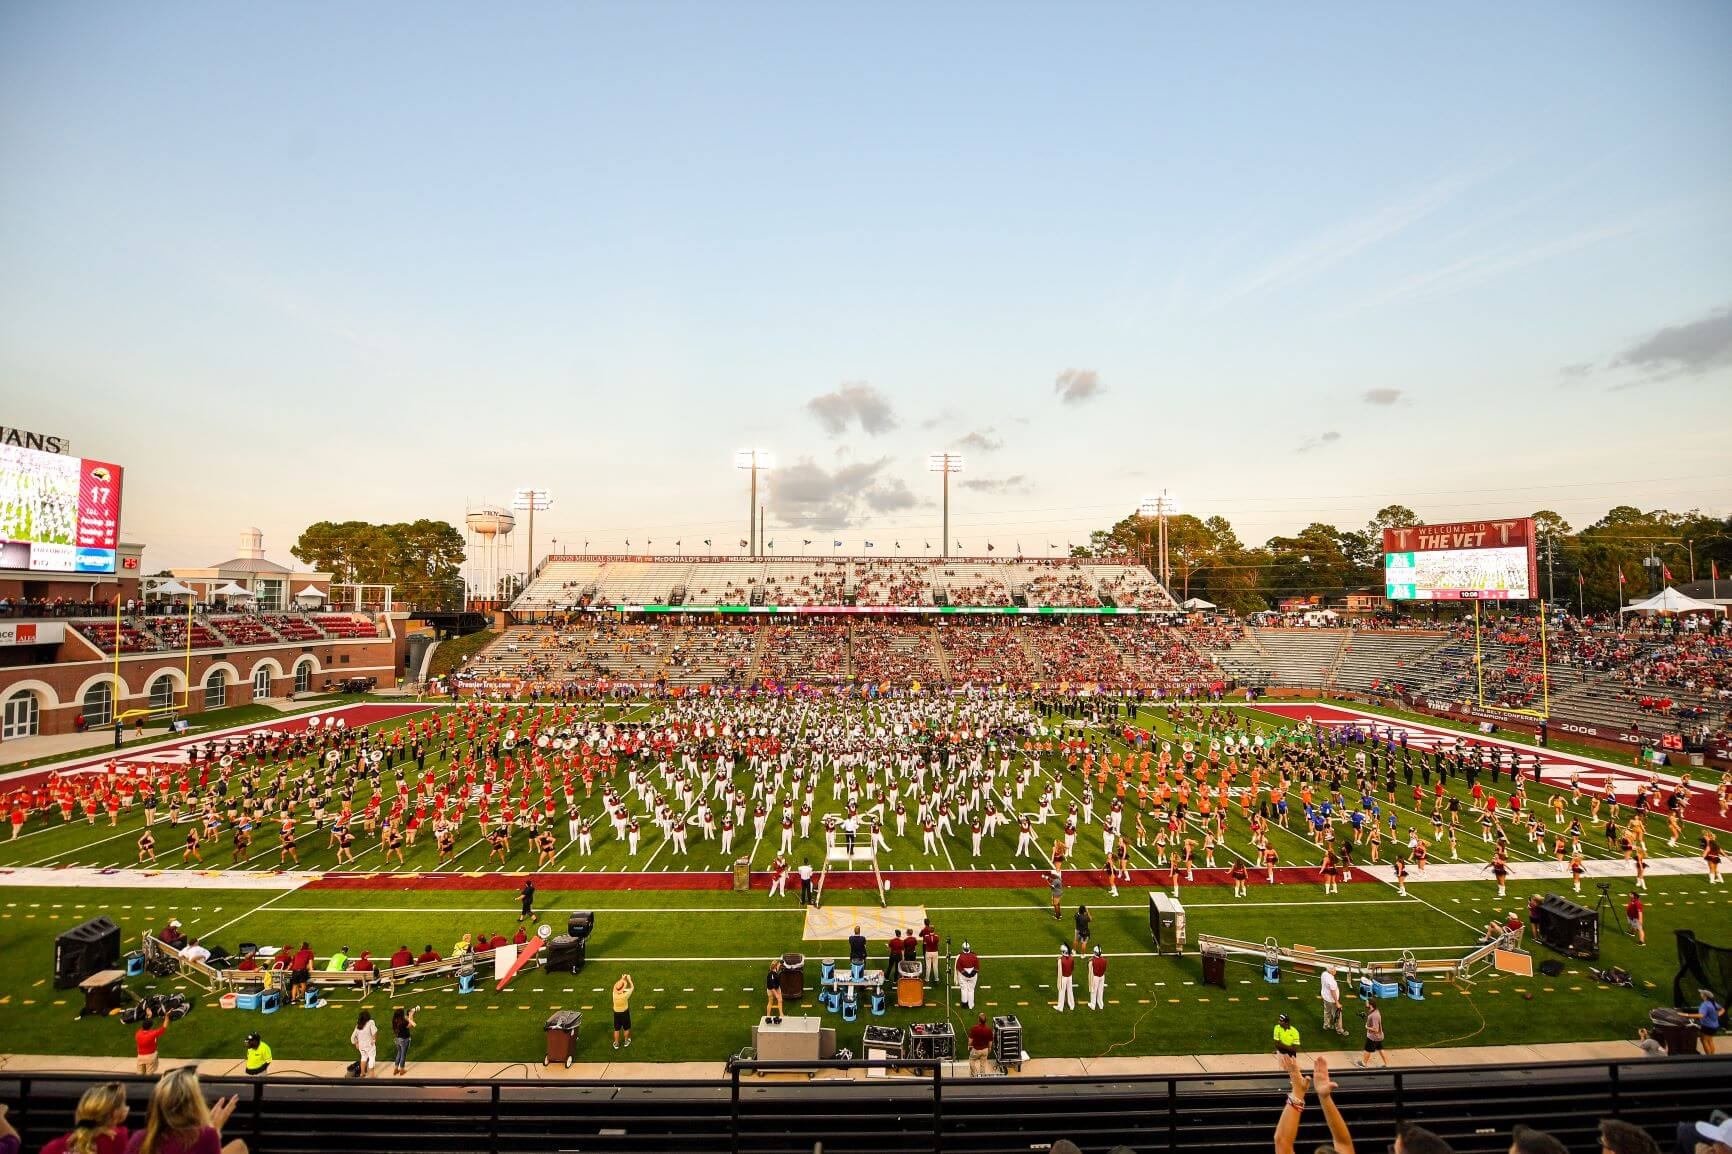 Band at Troy University Football Game